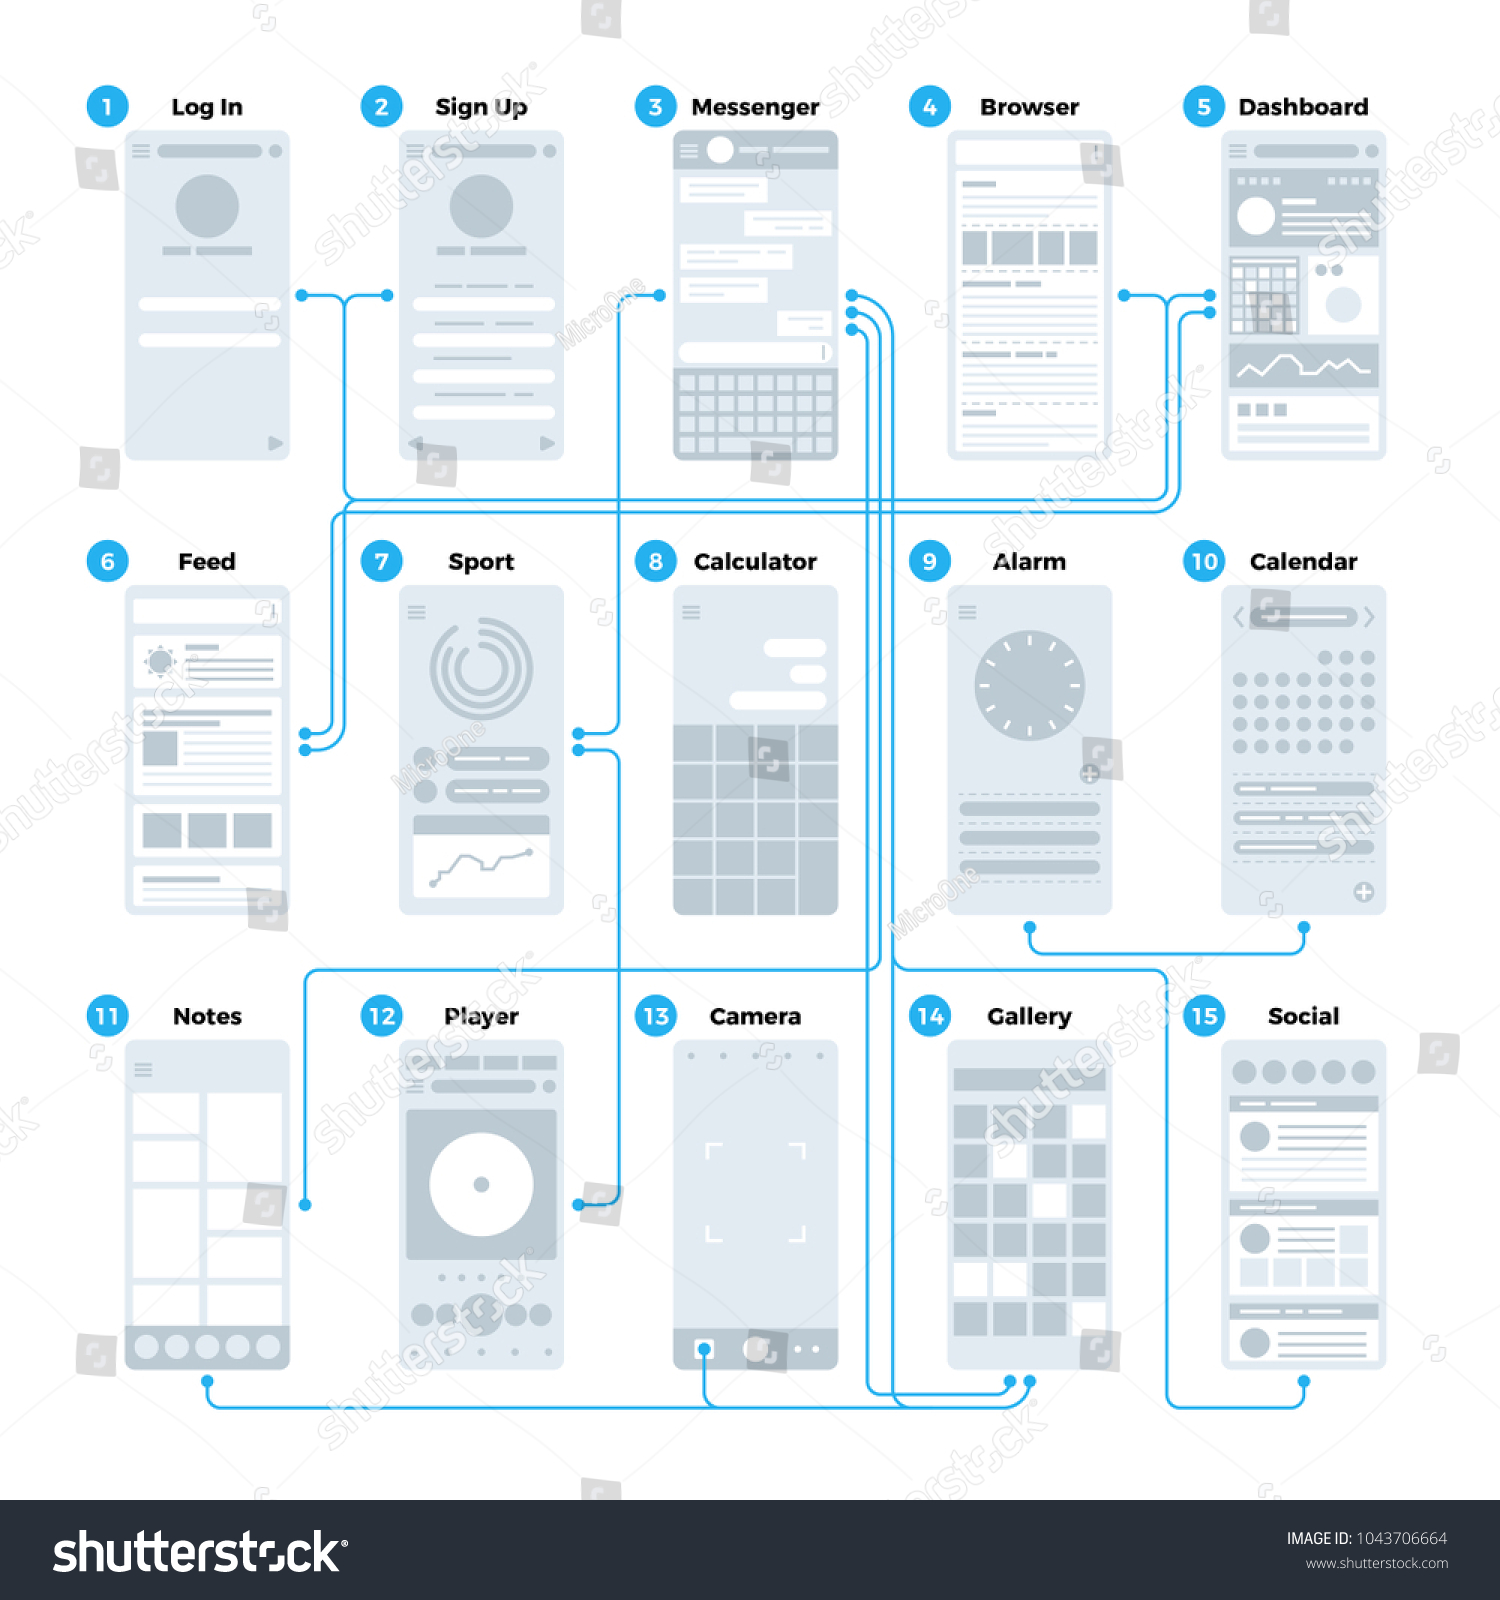 Ux Ui Application Interface Flowchart Mobile Stock Vector Royalty